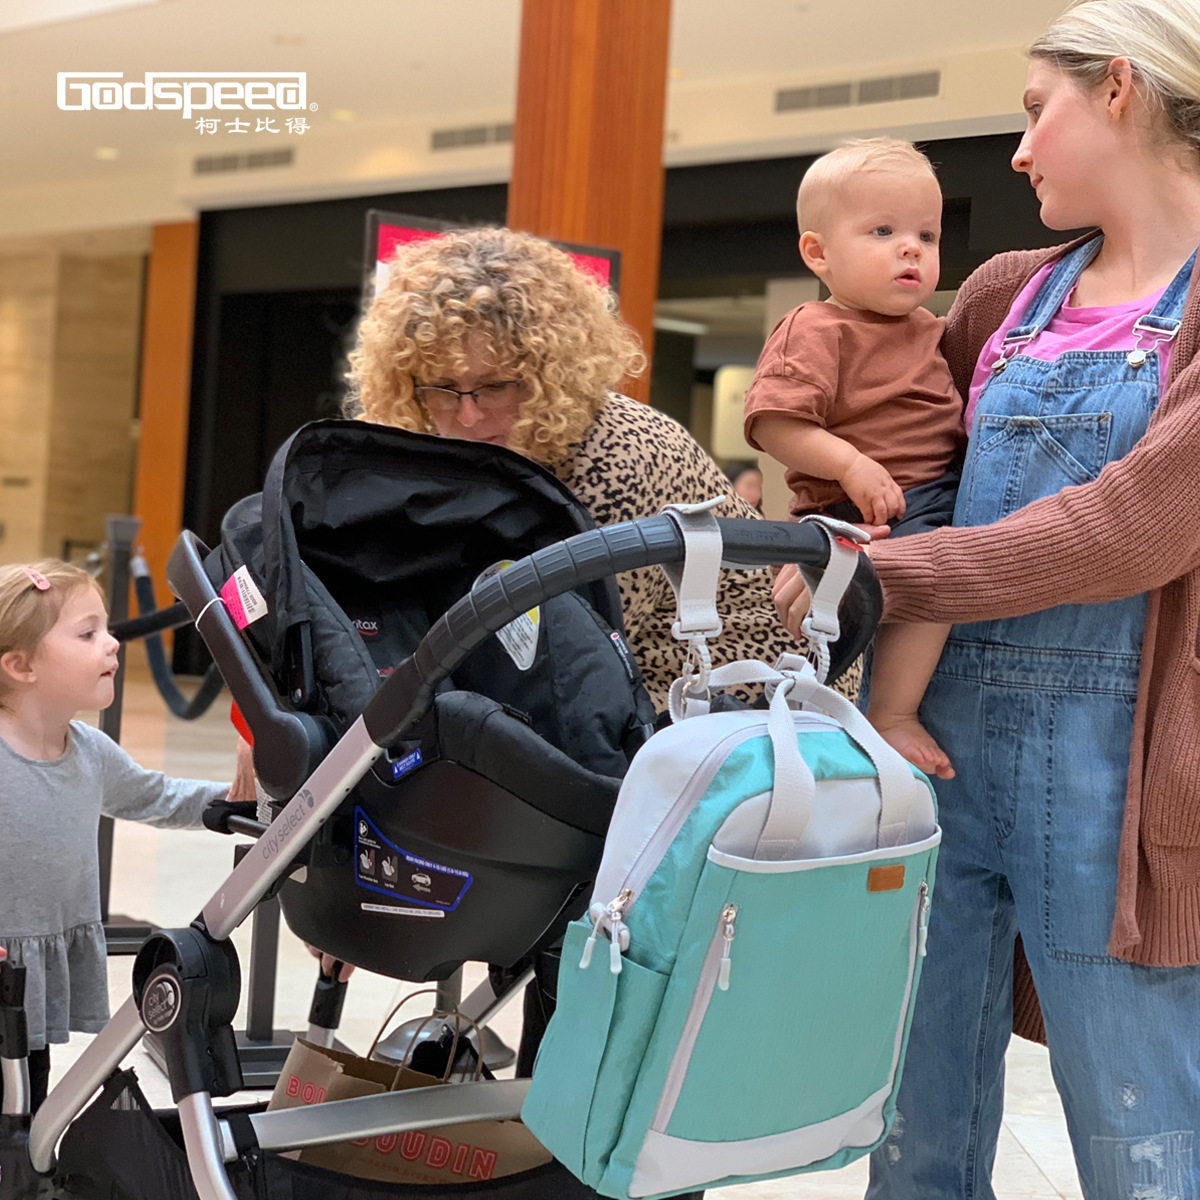 Godspeed2019 New Style Modern And Trendy/women Backpack Diaper Bag Nursing Travel Light Multi-functional Mom And Baby Backpack